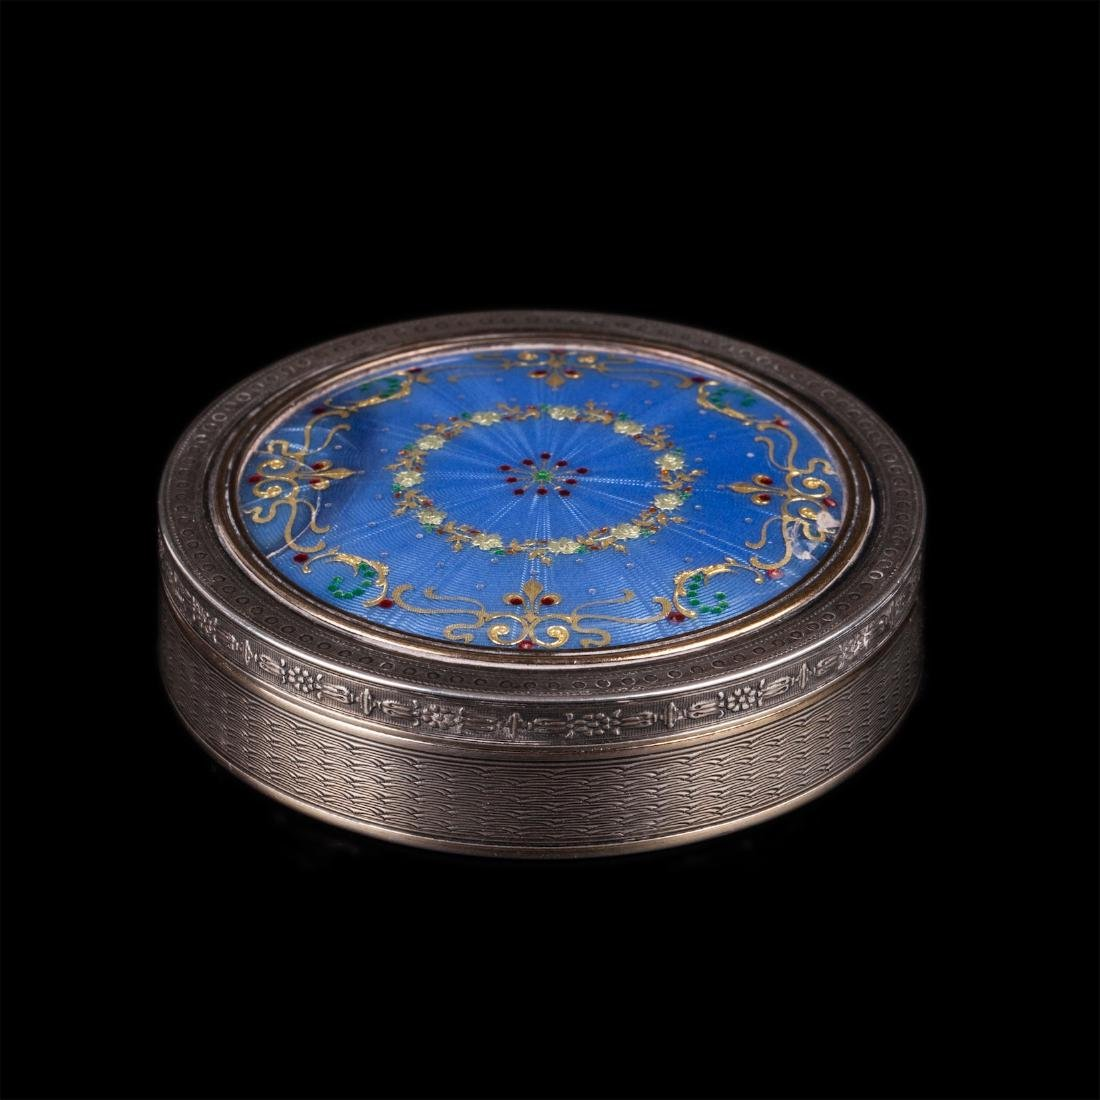 Antique French silver and guilloche enamel snuff box